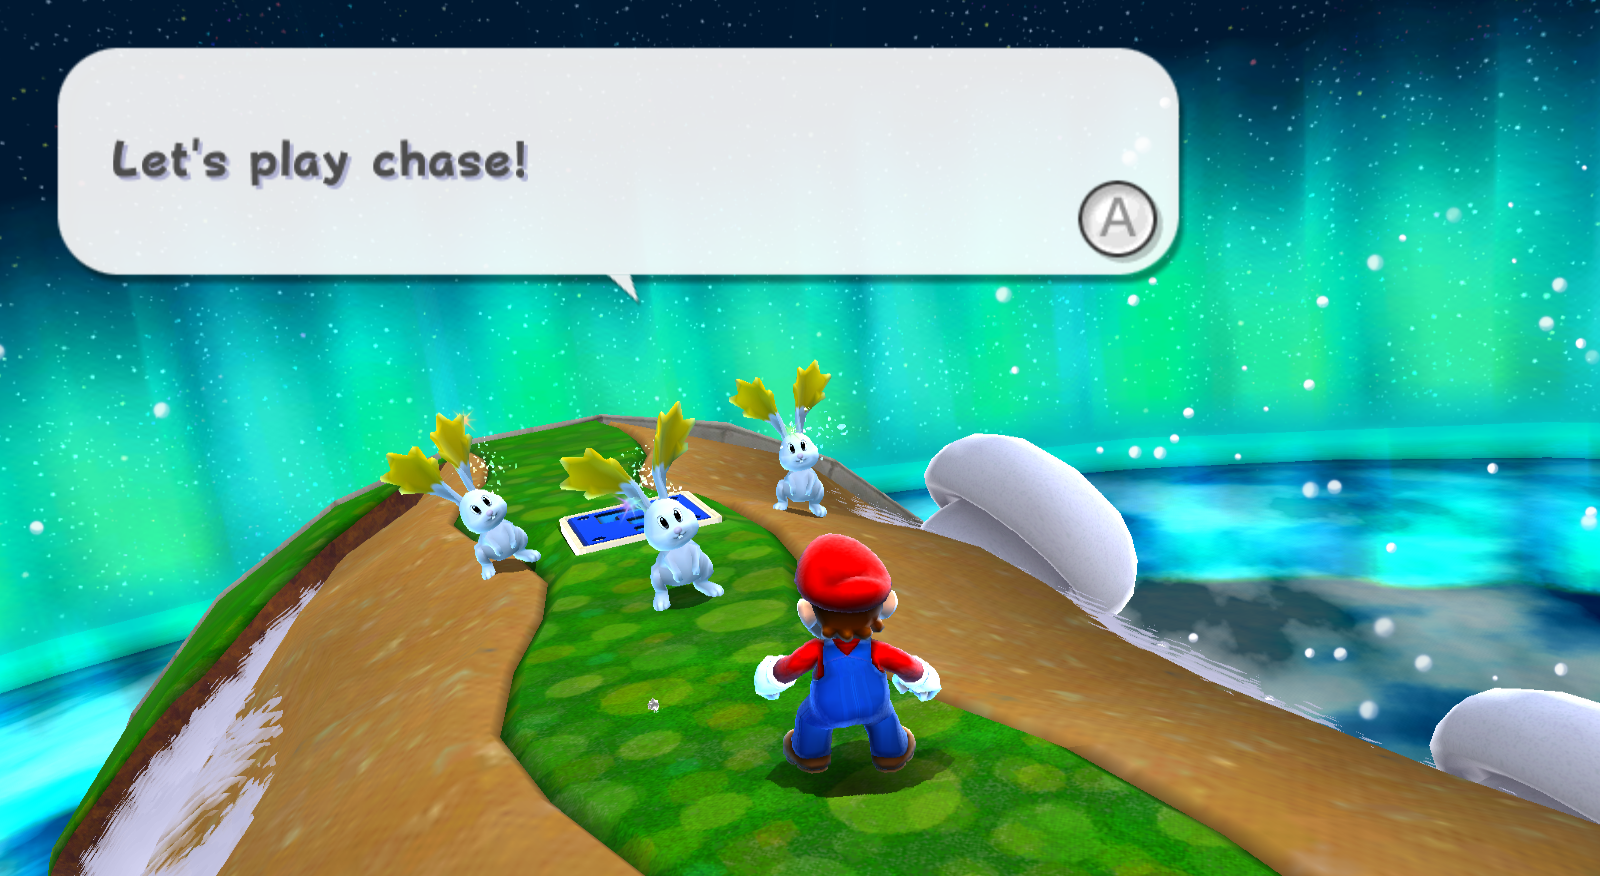 https://www.mariowiki.com/images/5/59/SMG_Snow_Cap_Galaxy_Mission_1.png